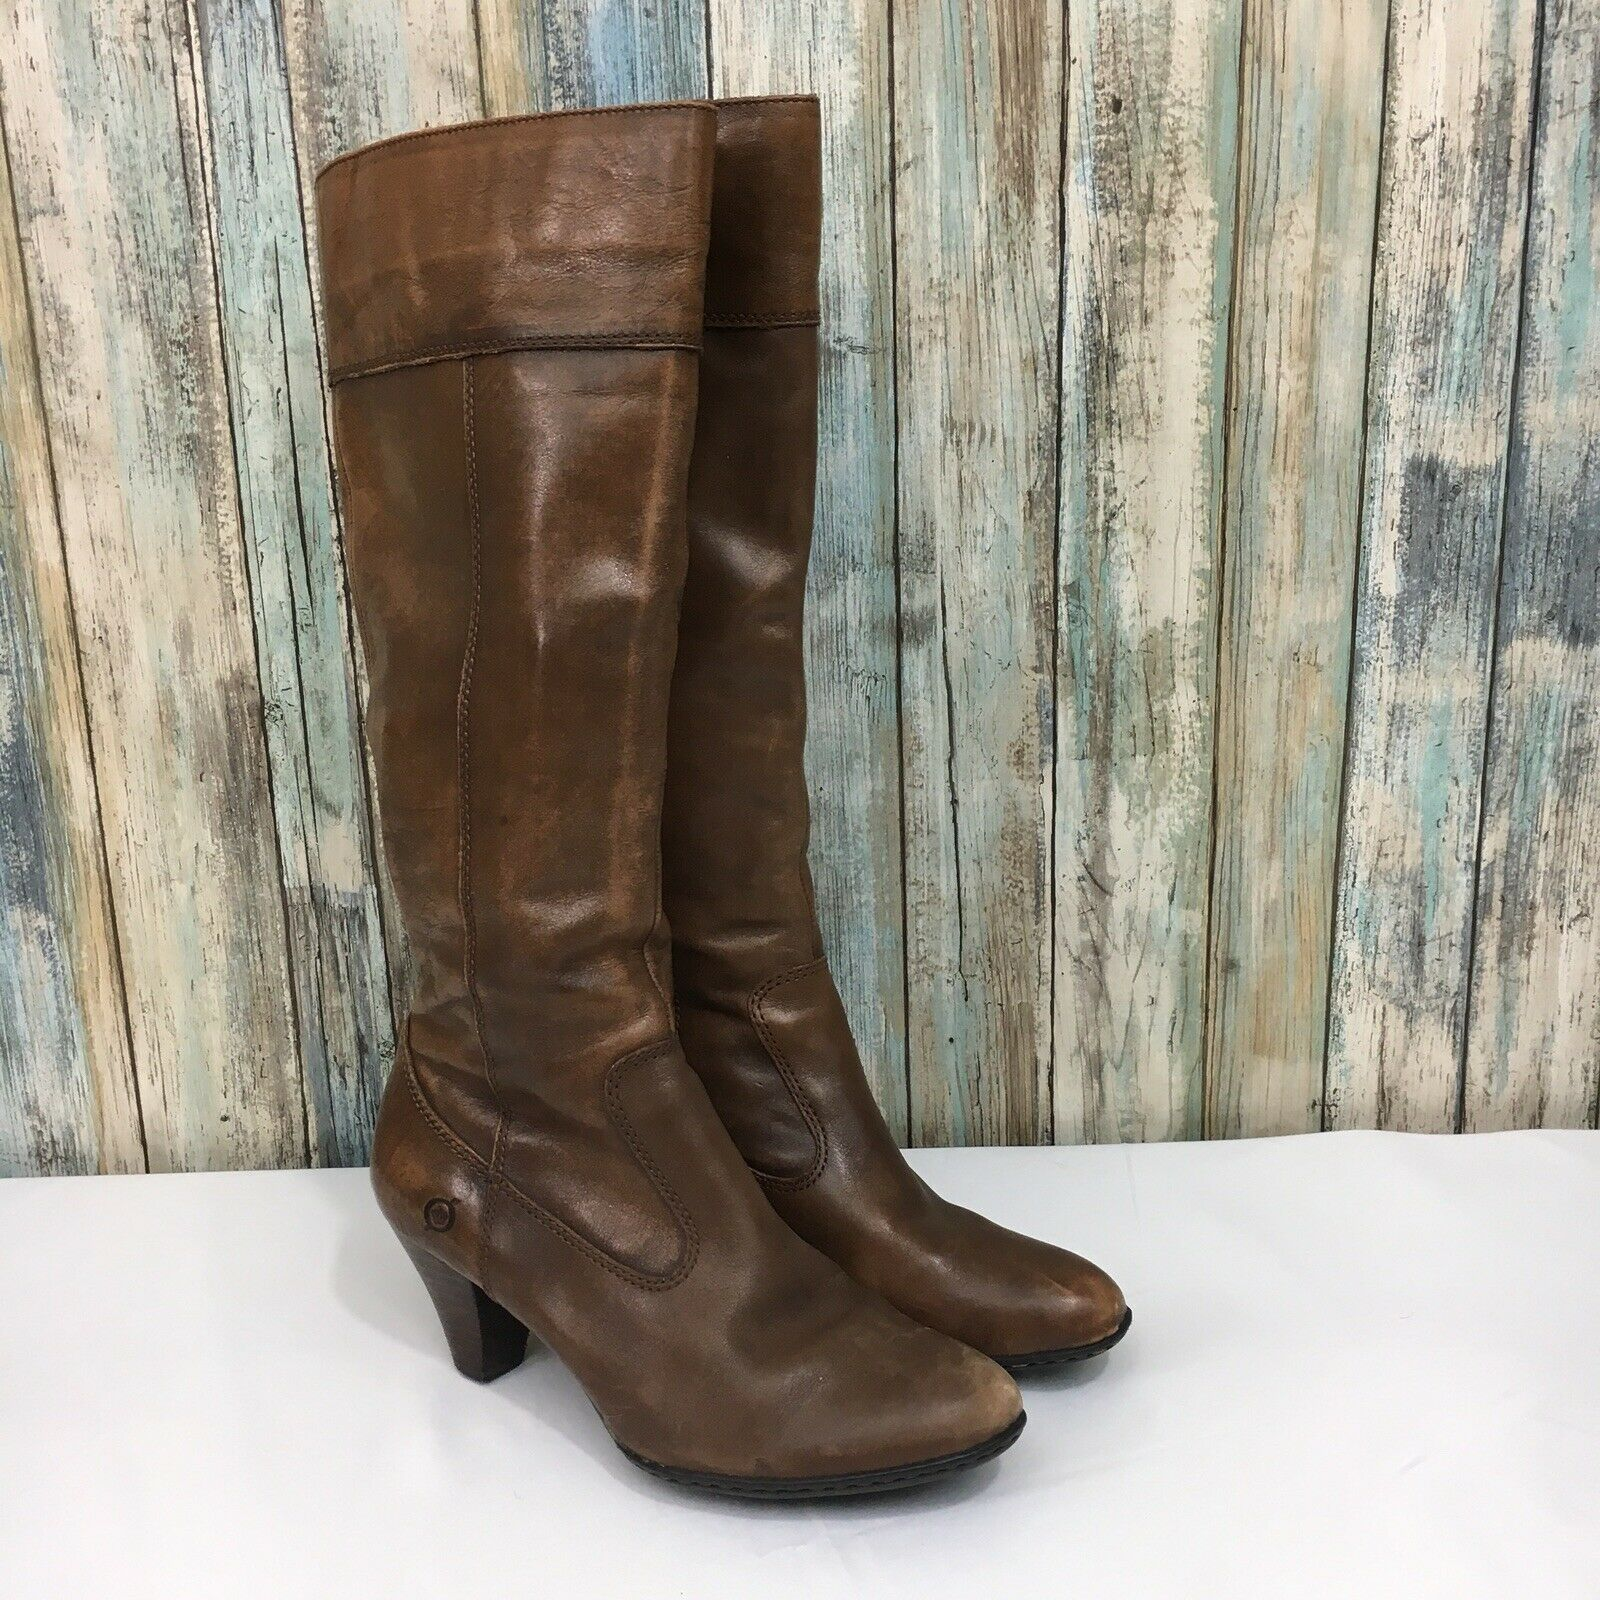 "Born Handcrafted Women's 7.5 38.5 Side Zip Brown Leather Heeled Boots 15"" Tall"